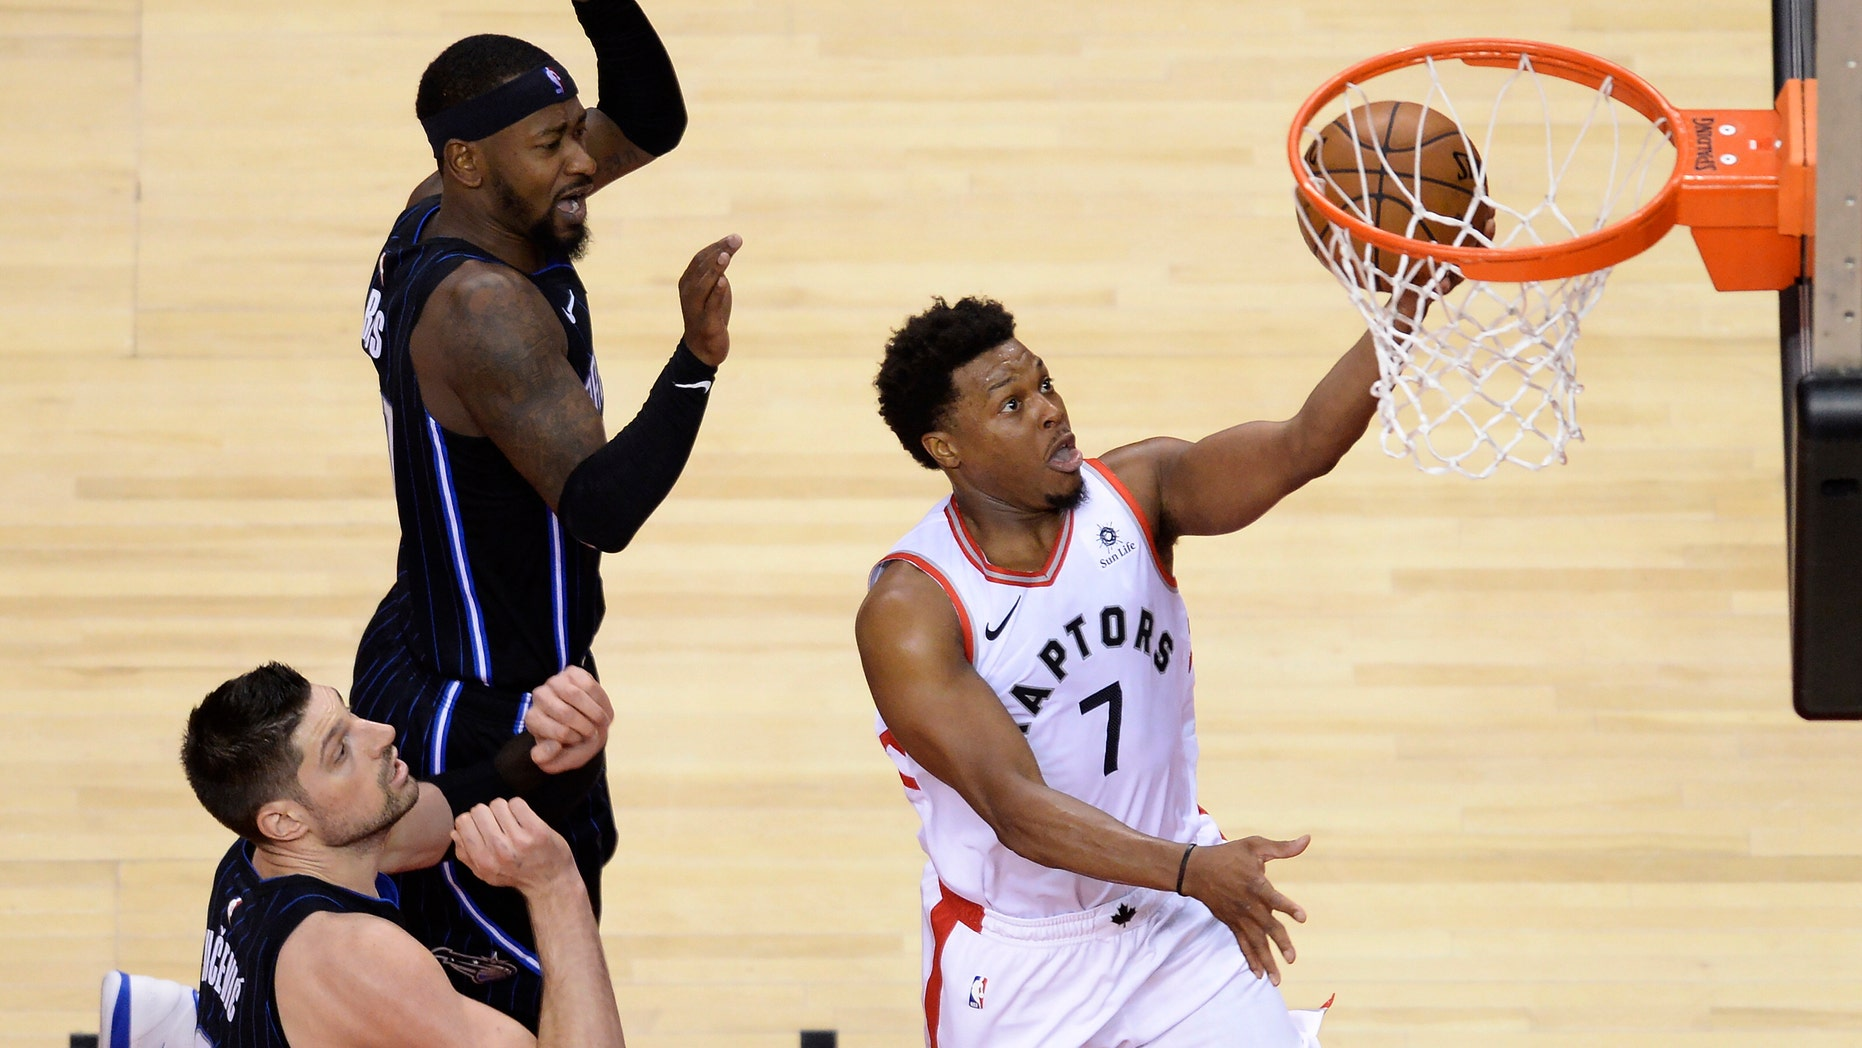 ed677f4dc Toronto Raptors guard Kyle Lowry (7) scores past Orlando Magic center  Nikola Vucevic (